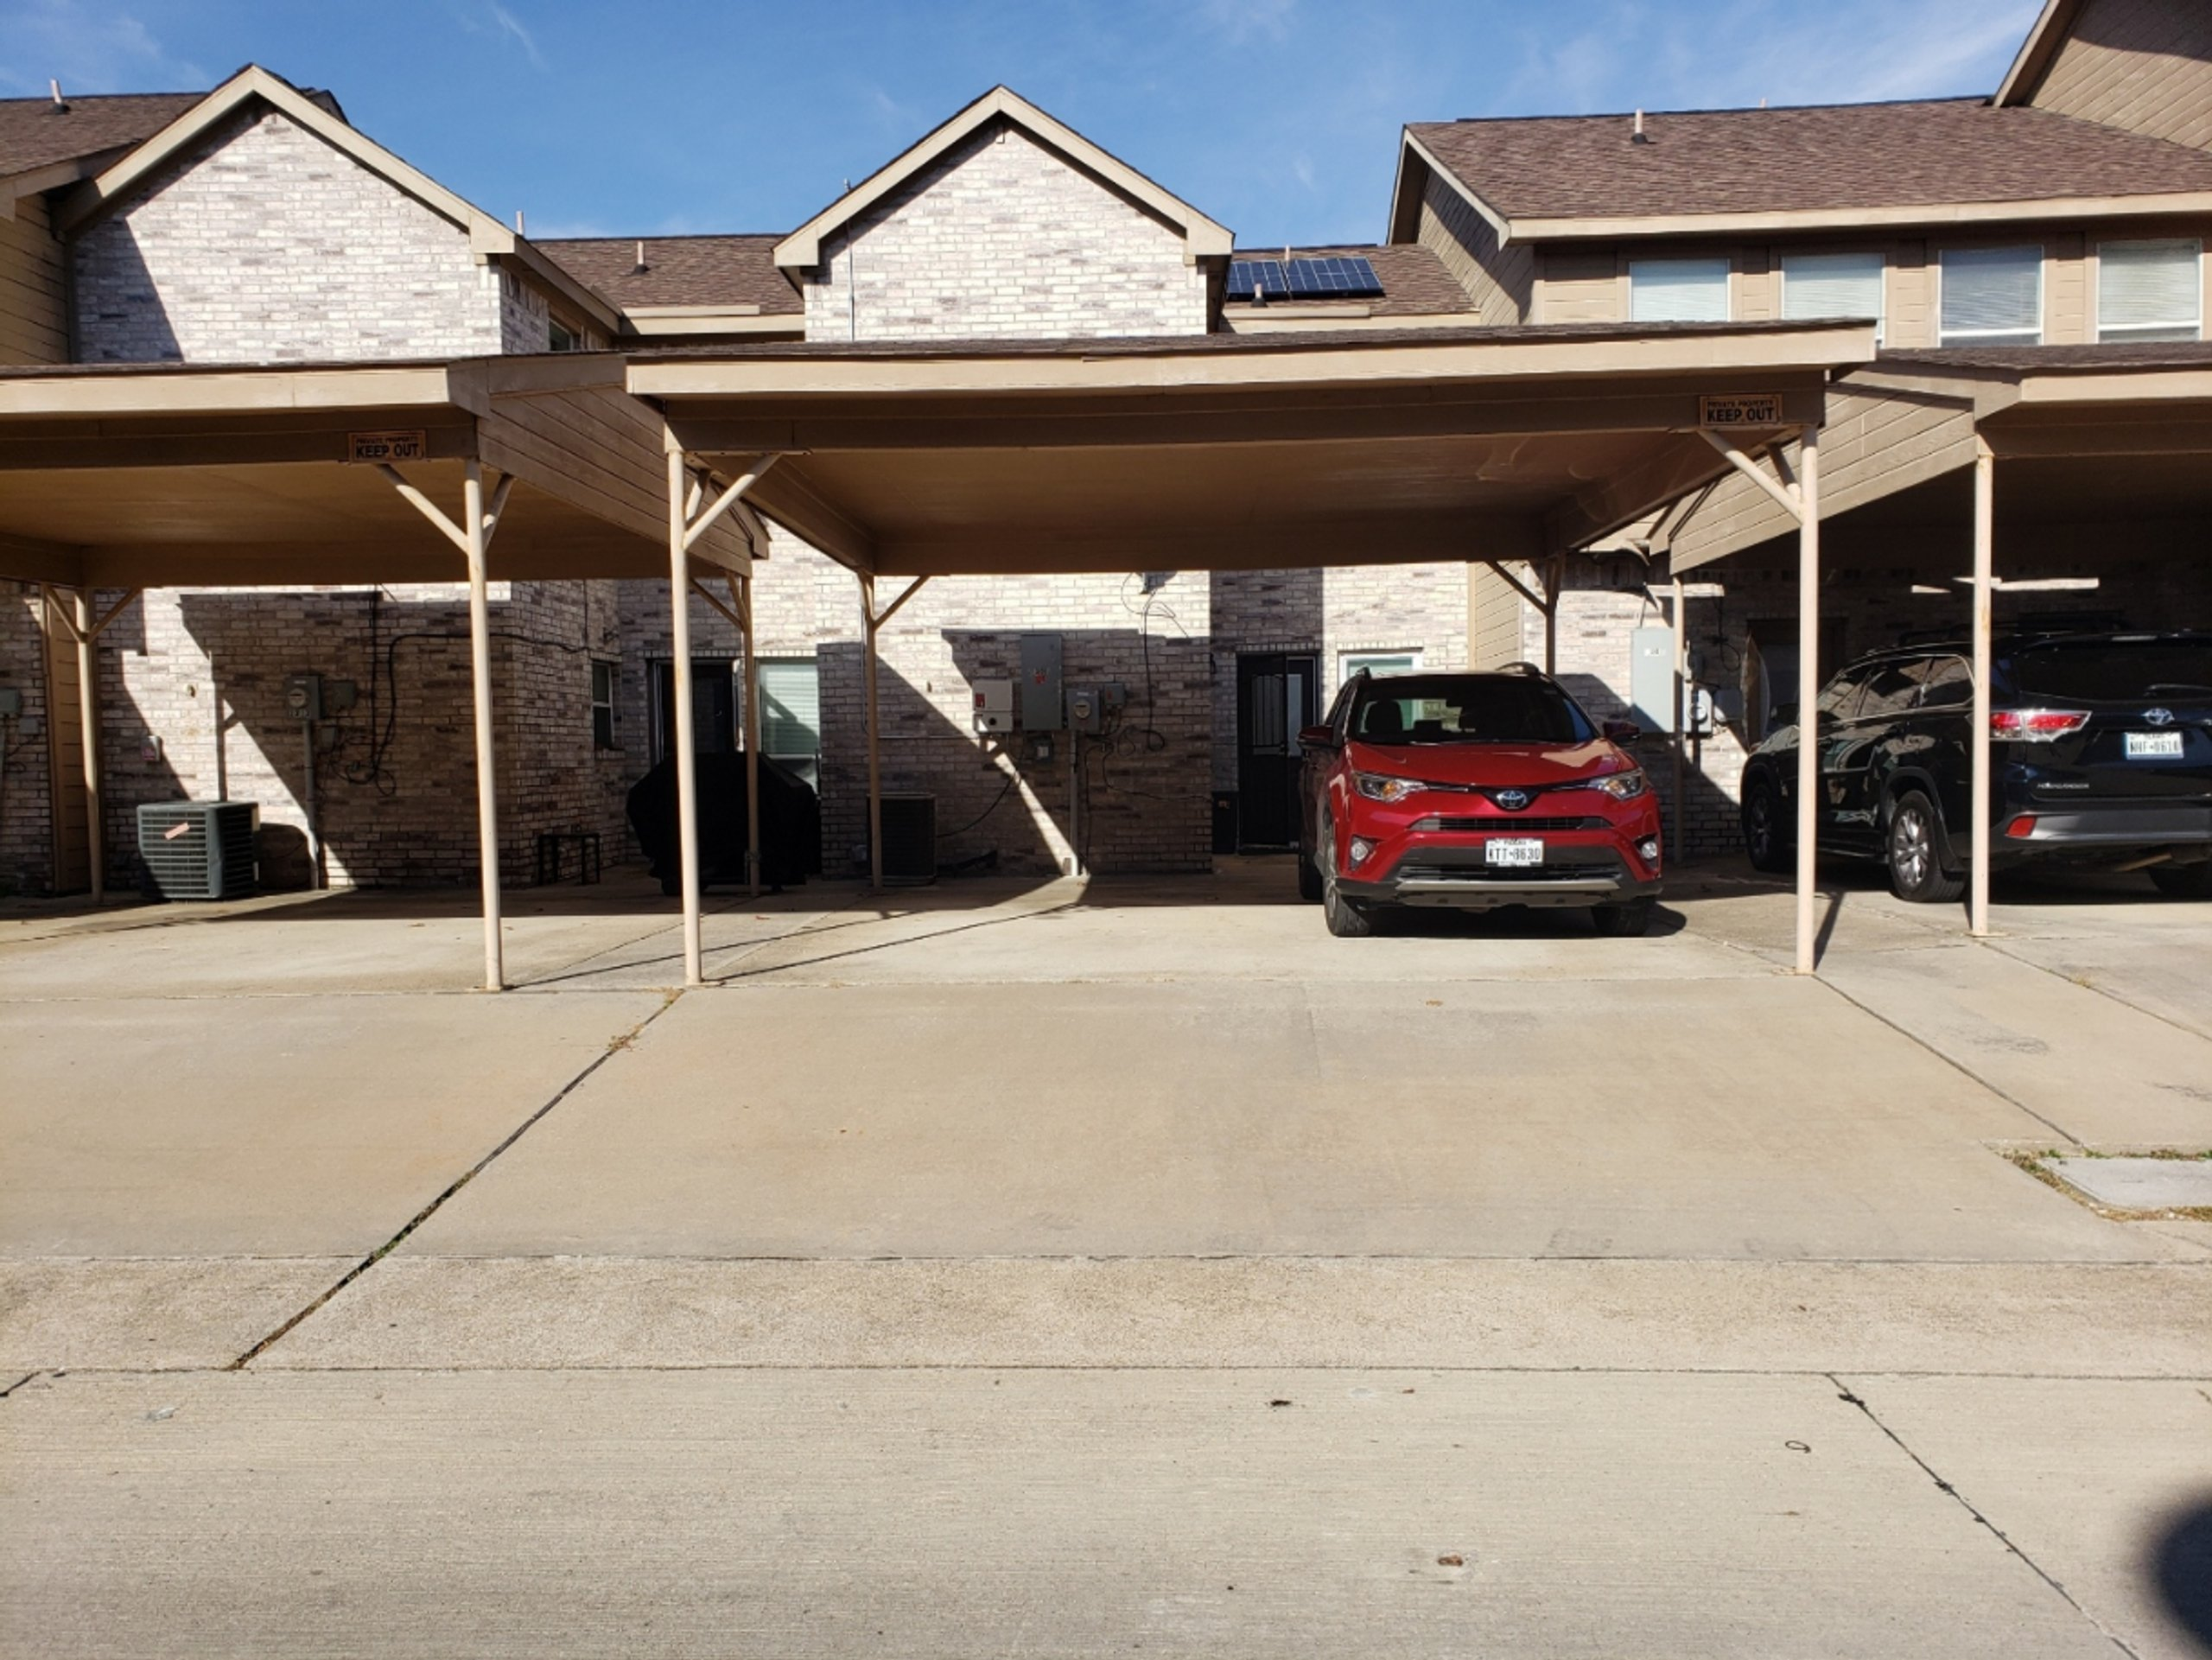 20x20 Carport self storage unit